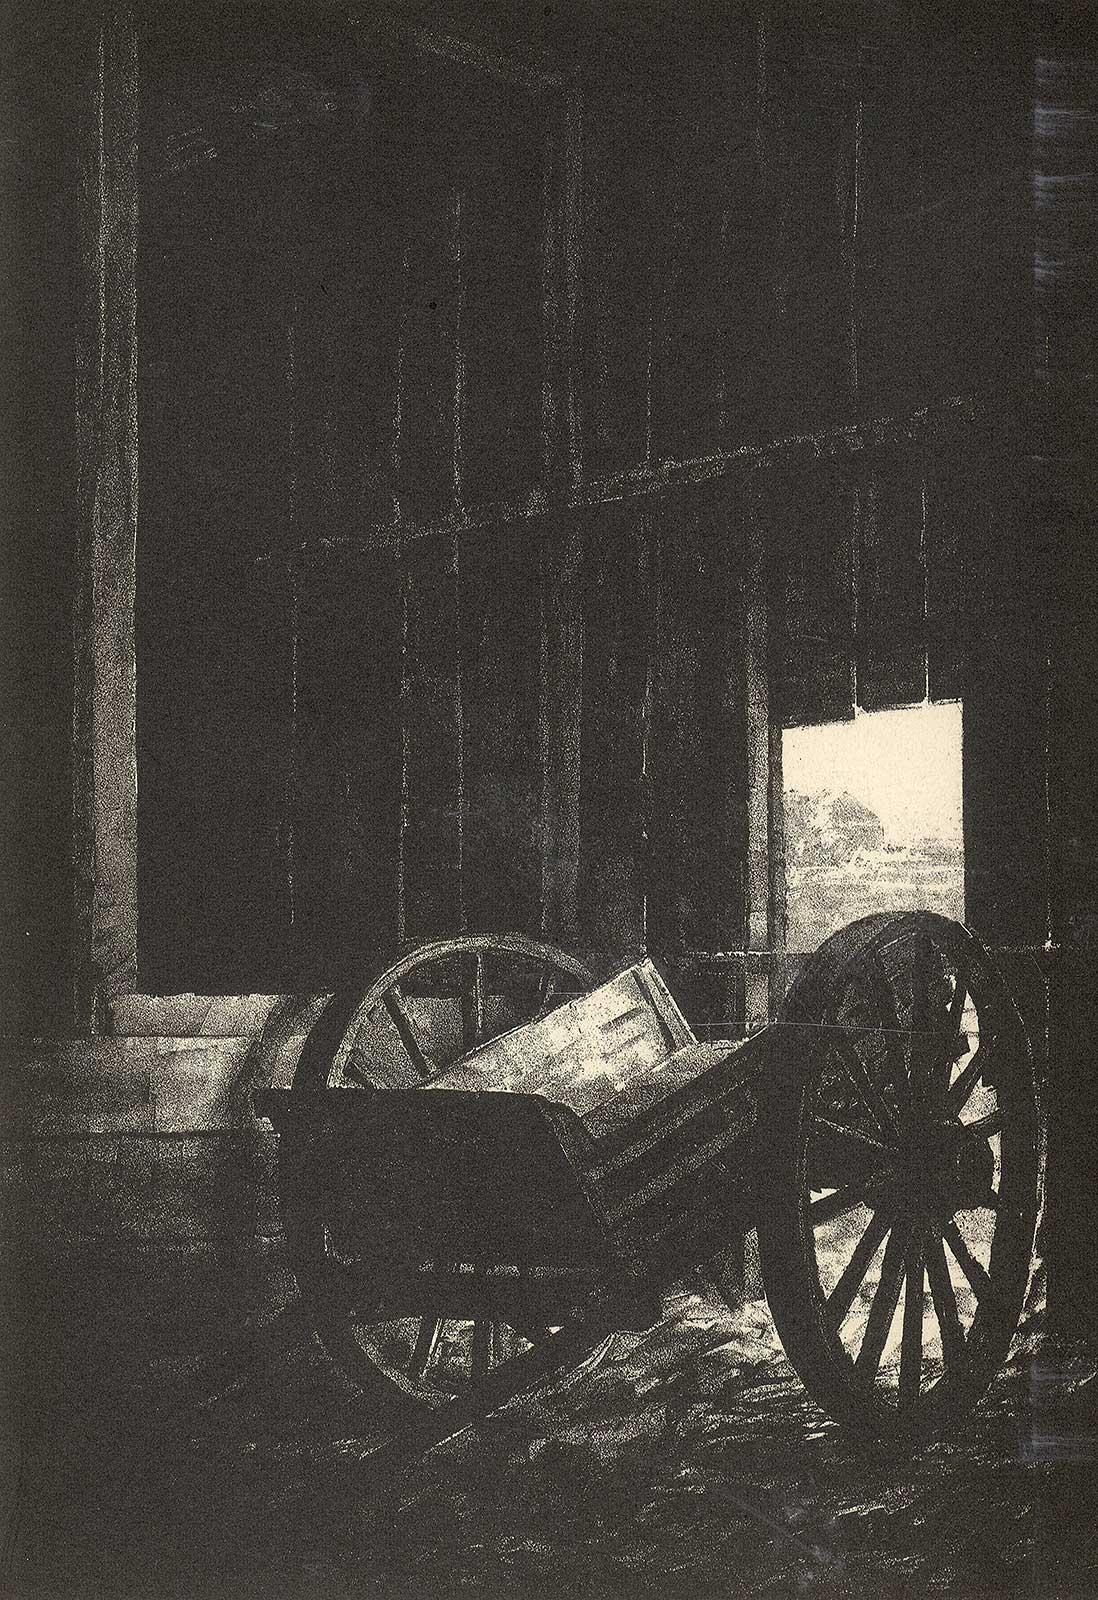 The Old Cart (Nostalgia for a disappearing way of American life)